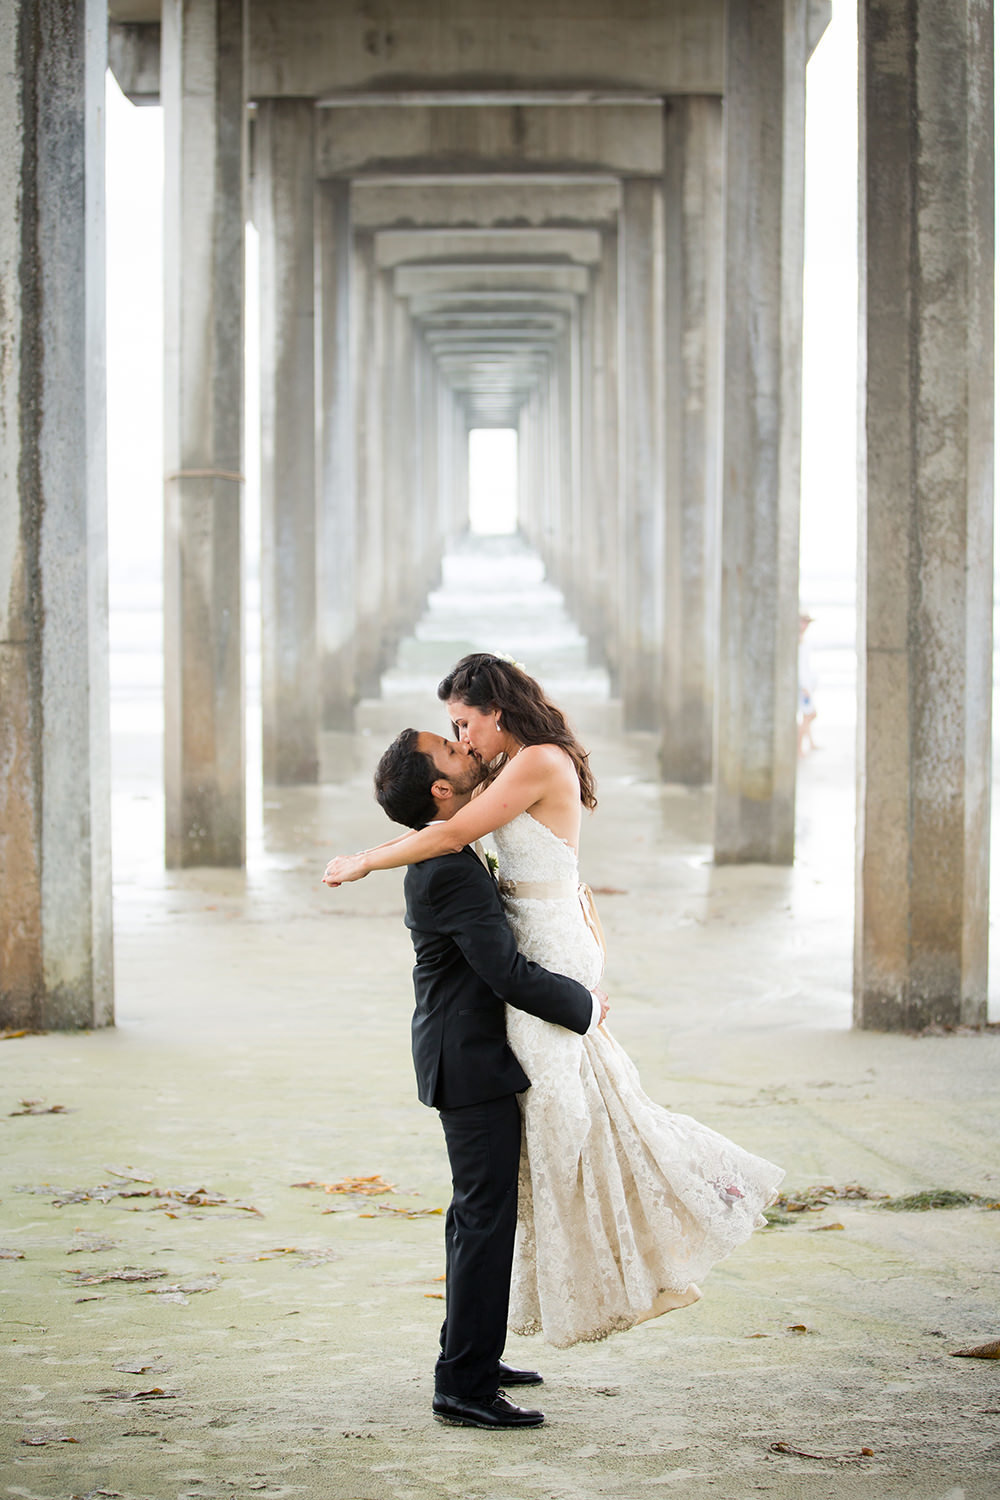 scripps pier with bride and groom